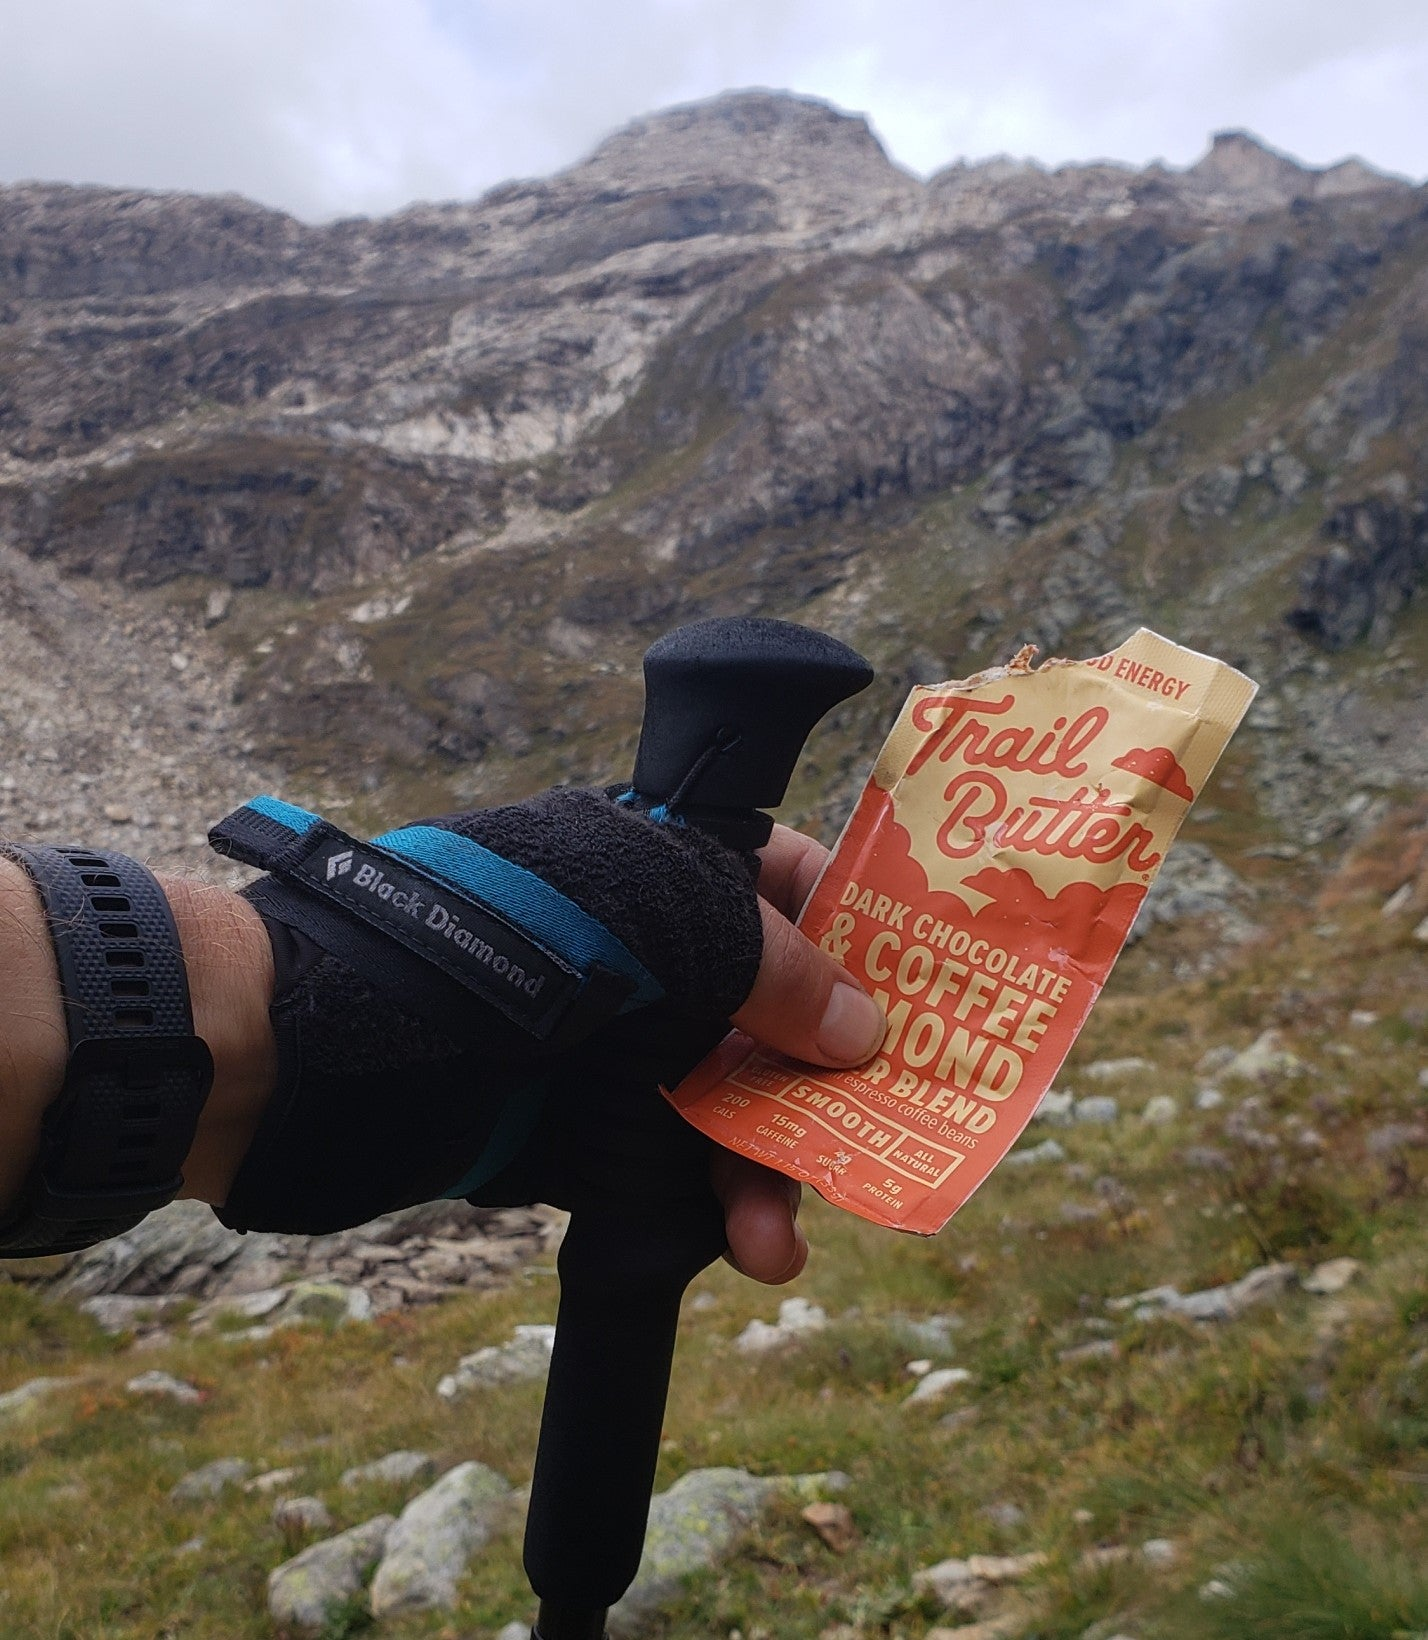 Trail Butter Dark Chocolate & Coffee out on the Tour des Geants course